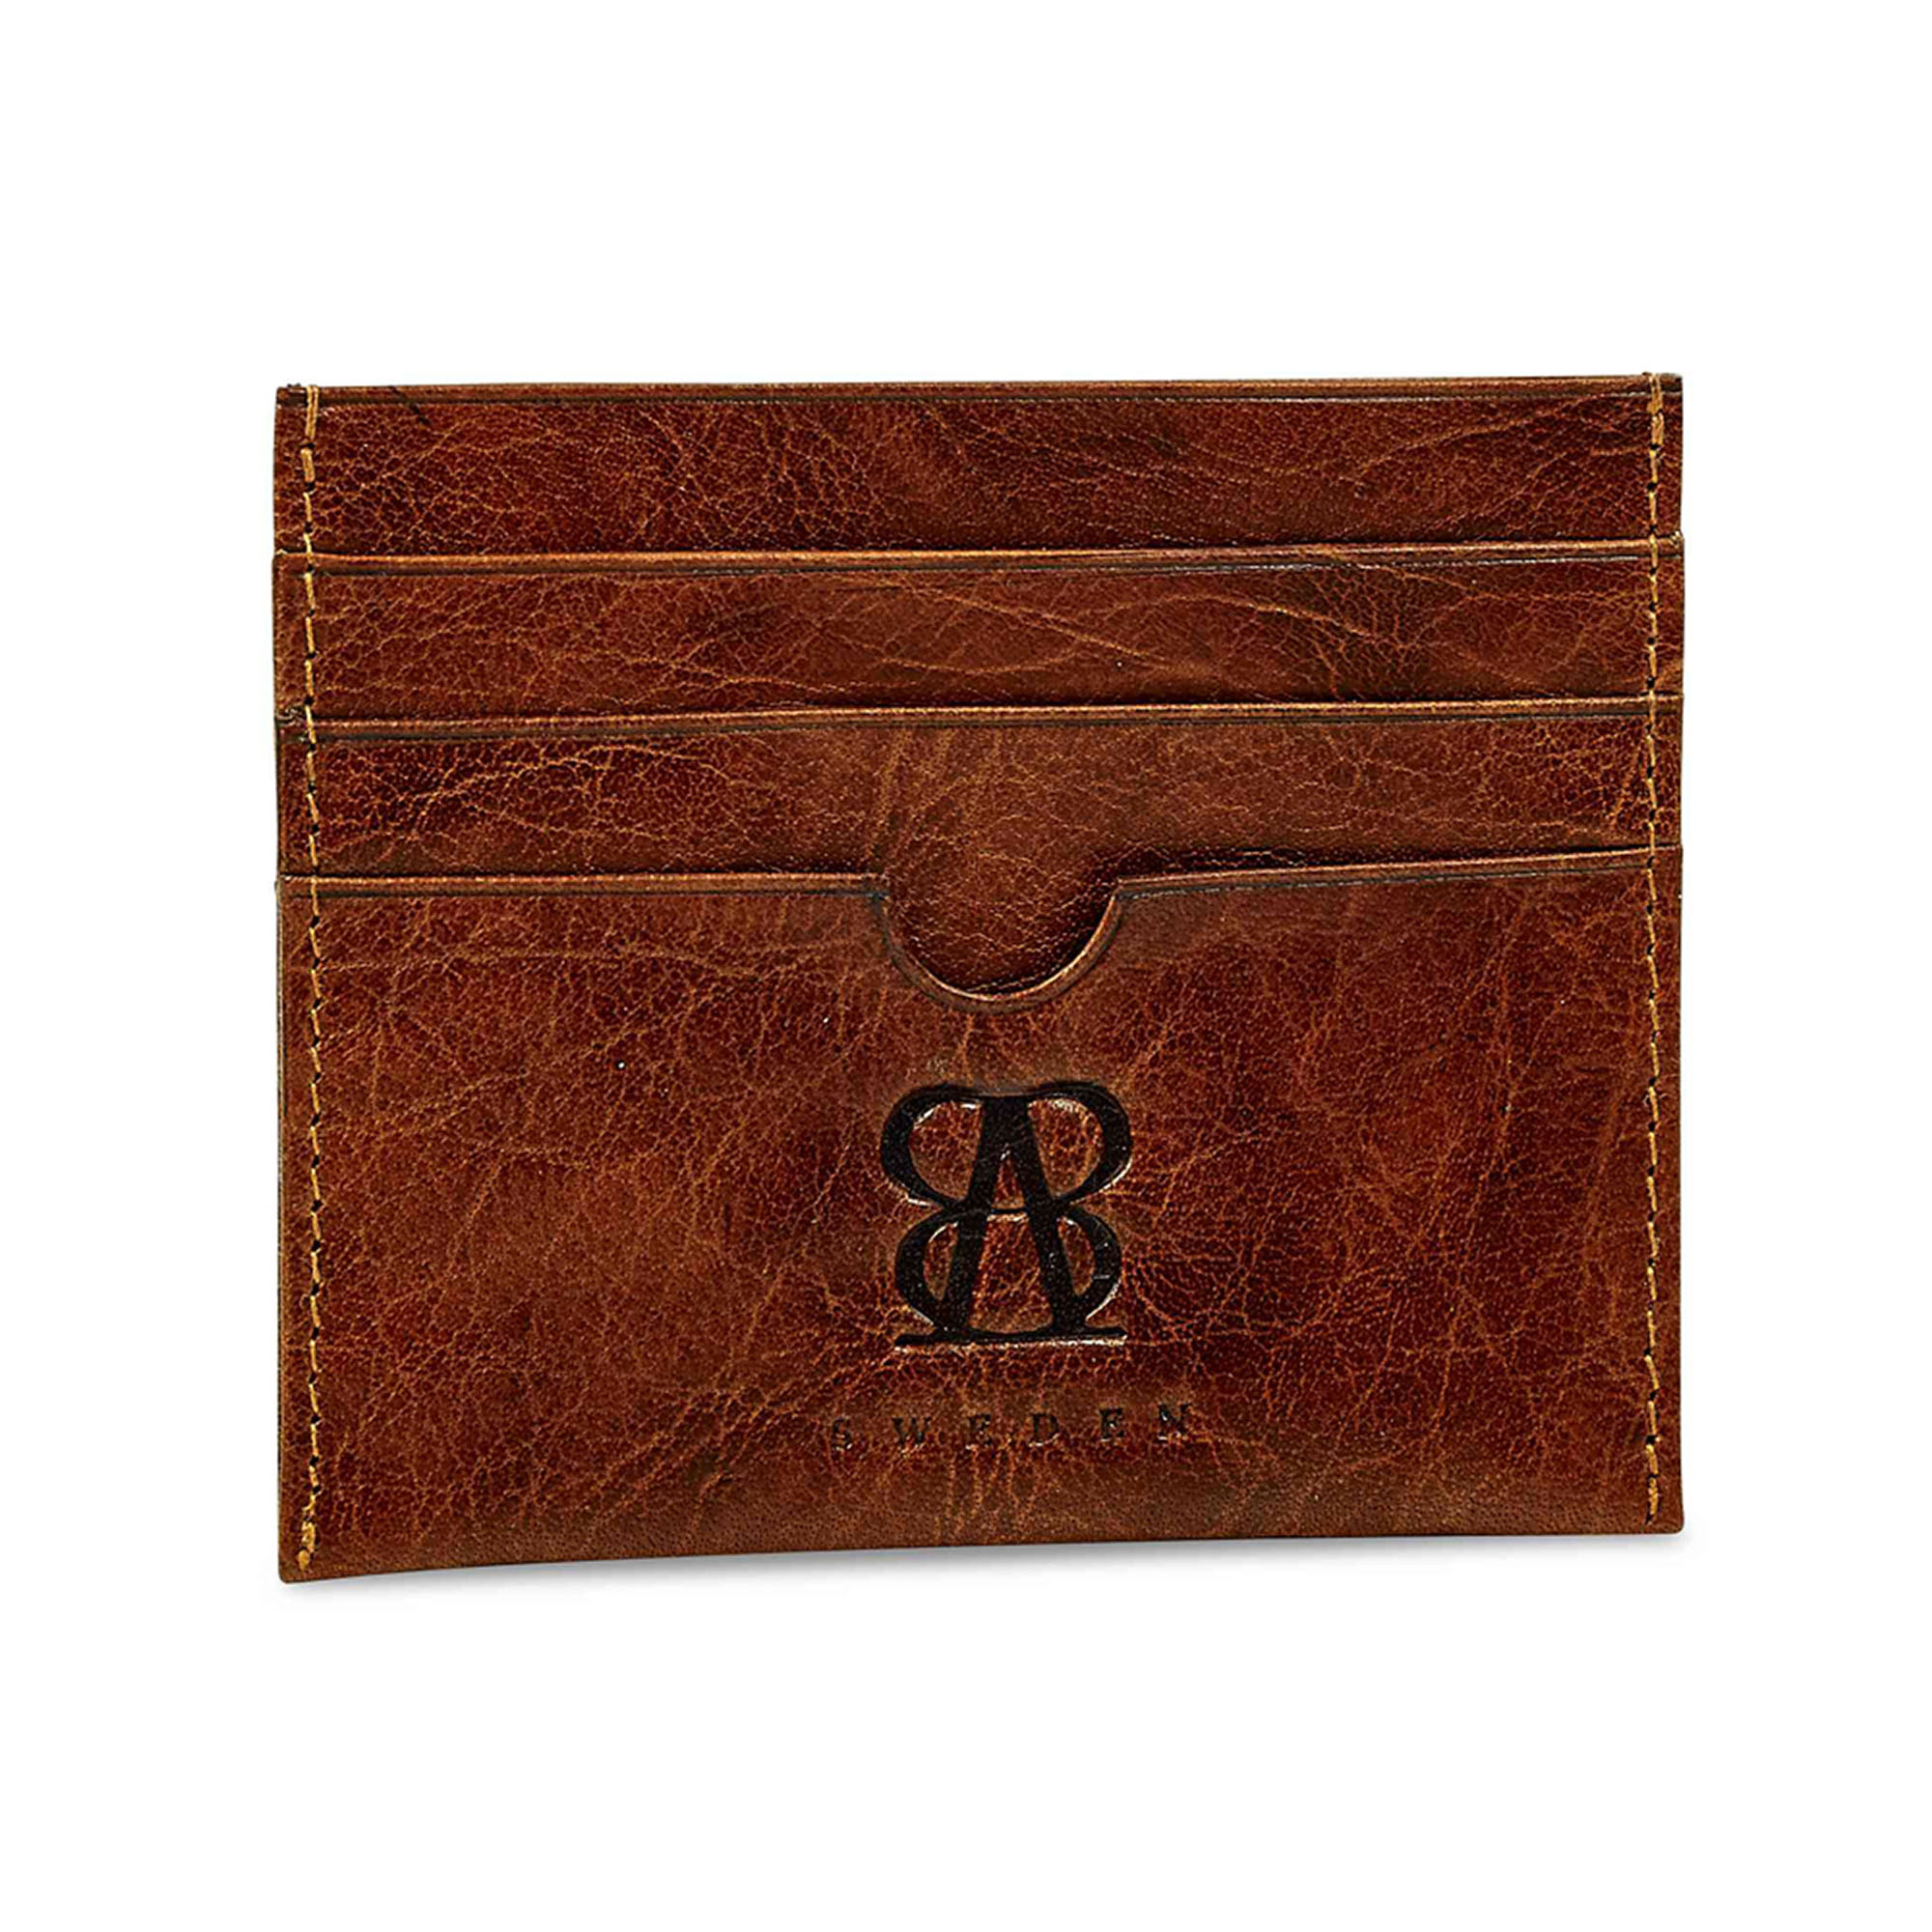 Exclusive wallet in waxed leather with 7 compartments and one pocket for banknote.